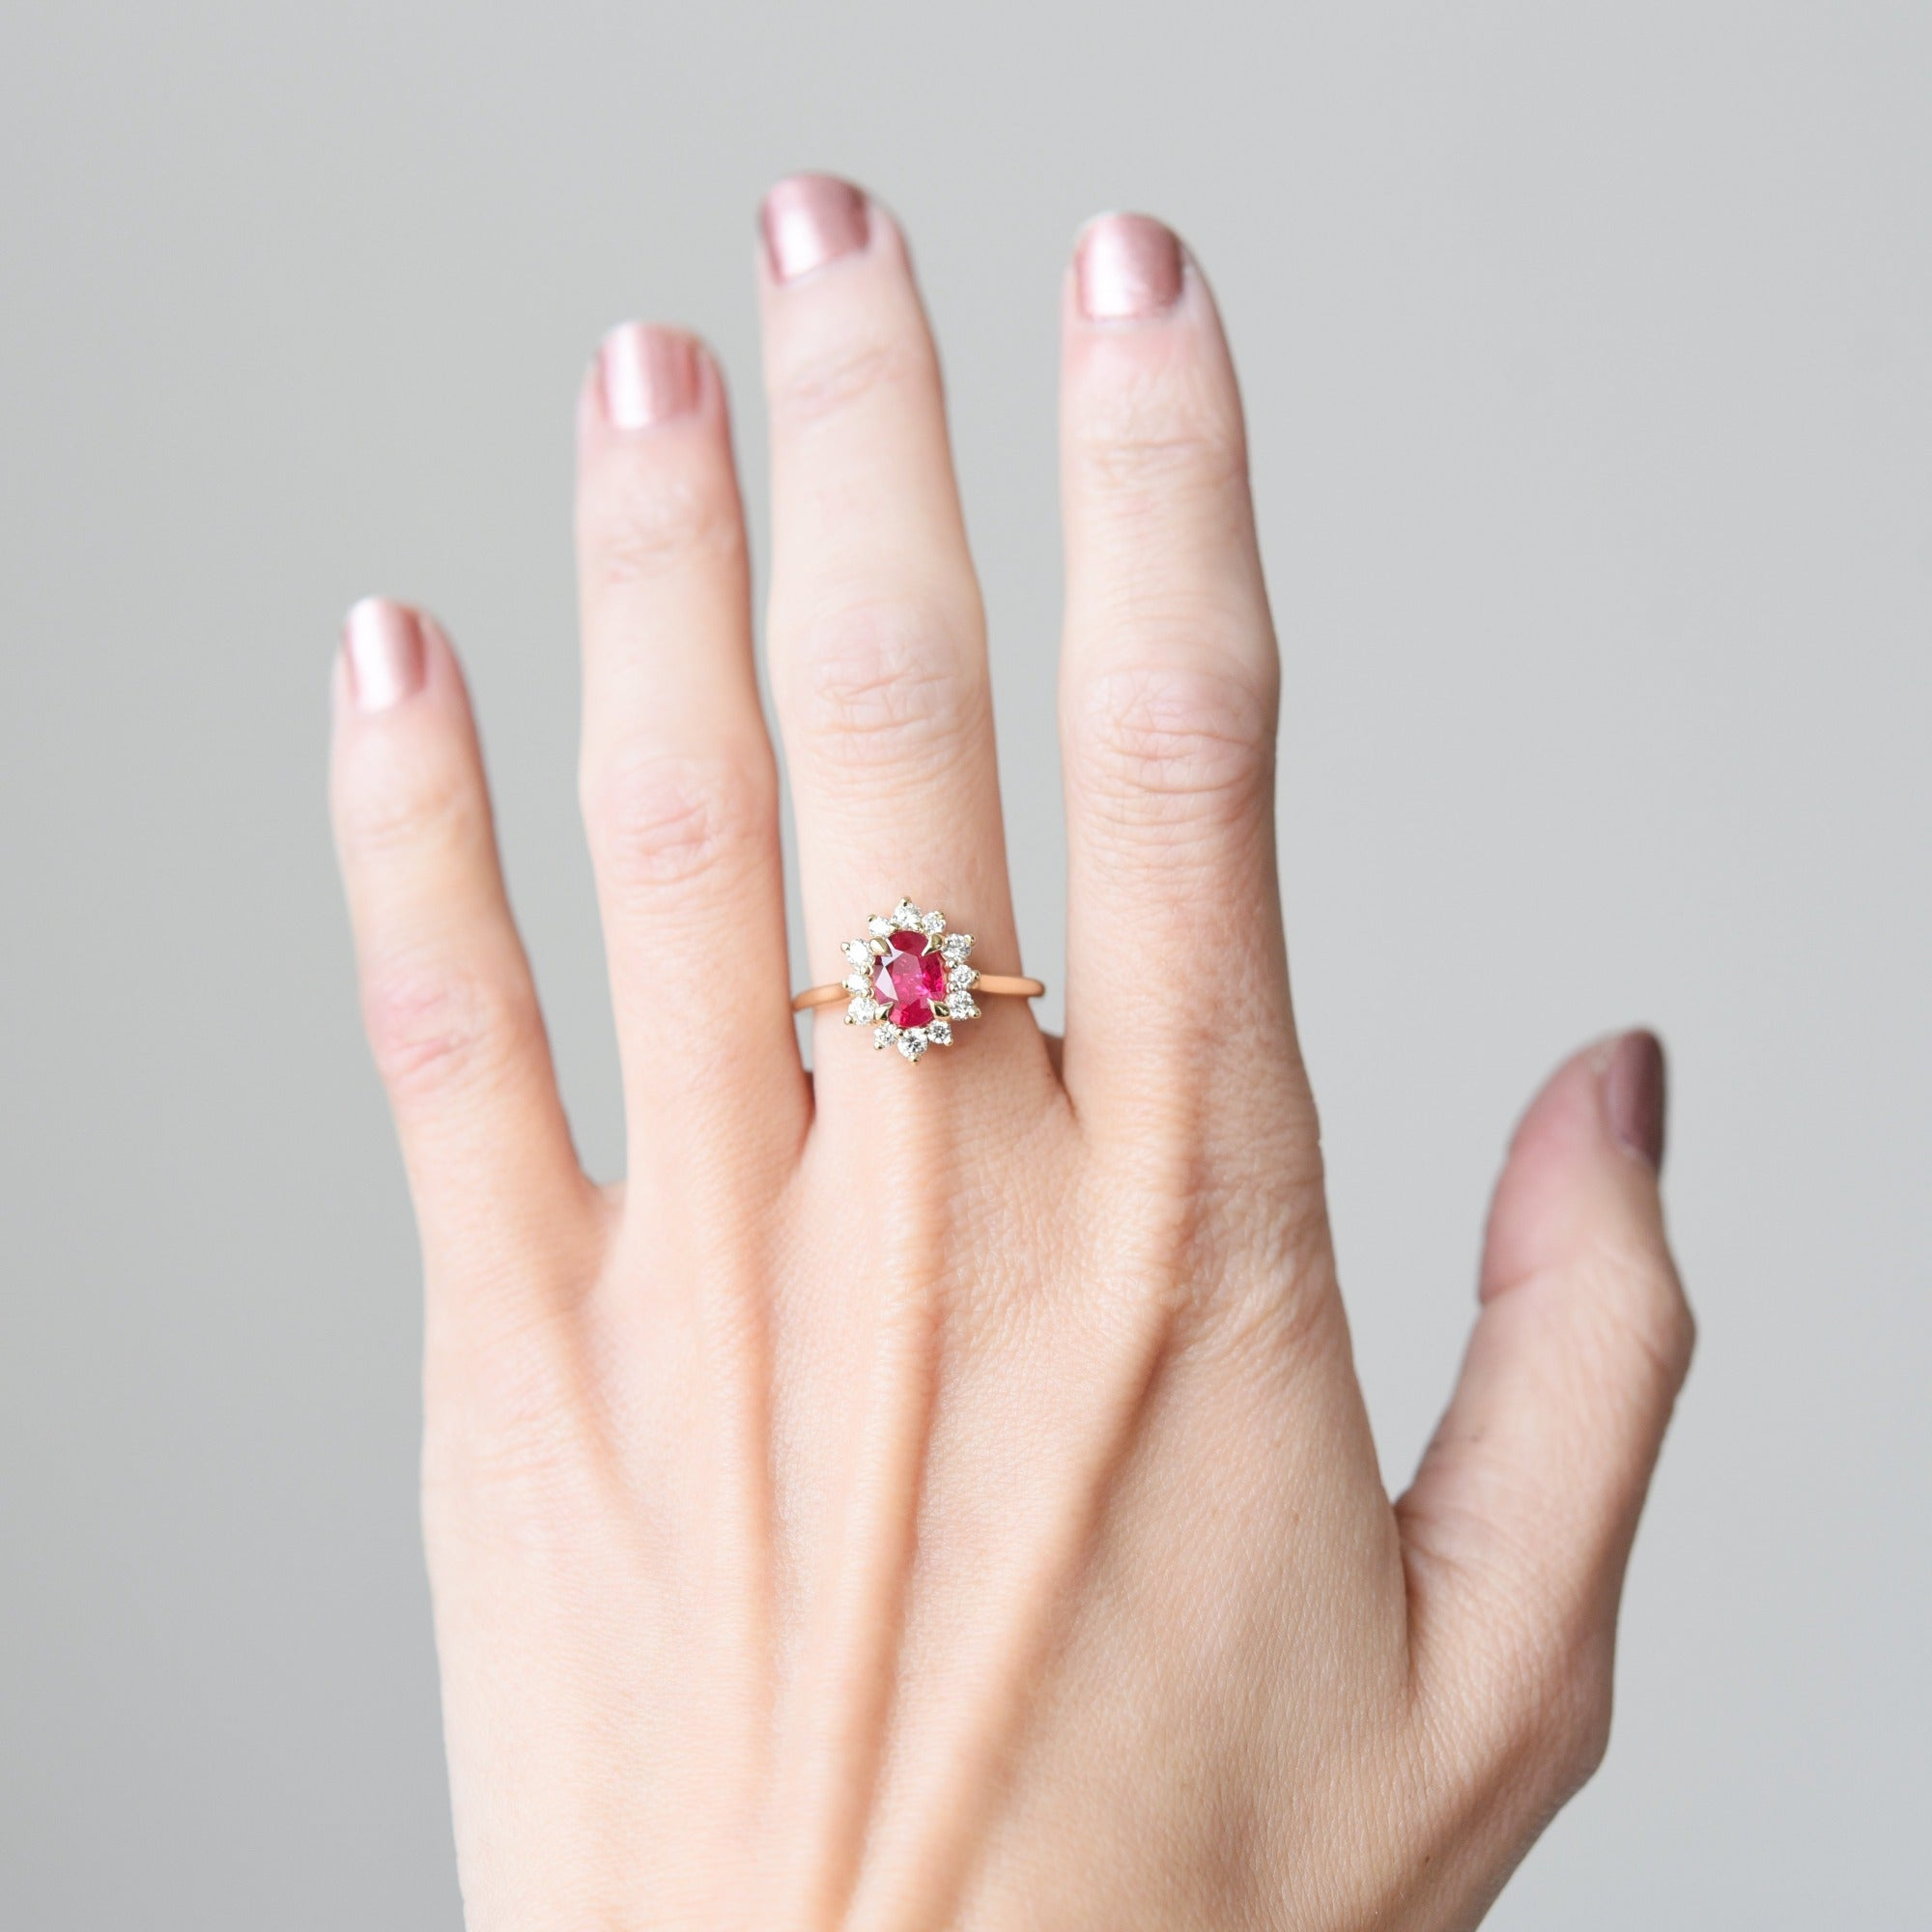 1.25ct Marisol Ruby Halo Diamond Engagement Ring shown from the front